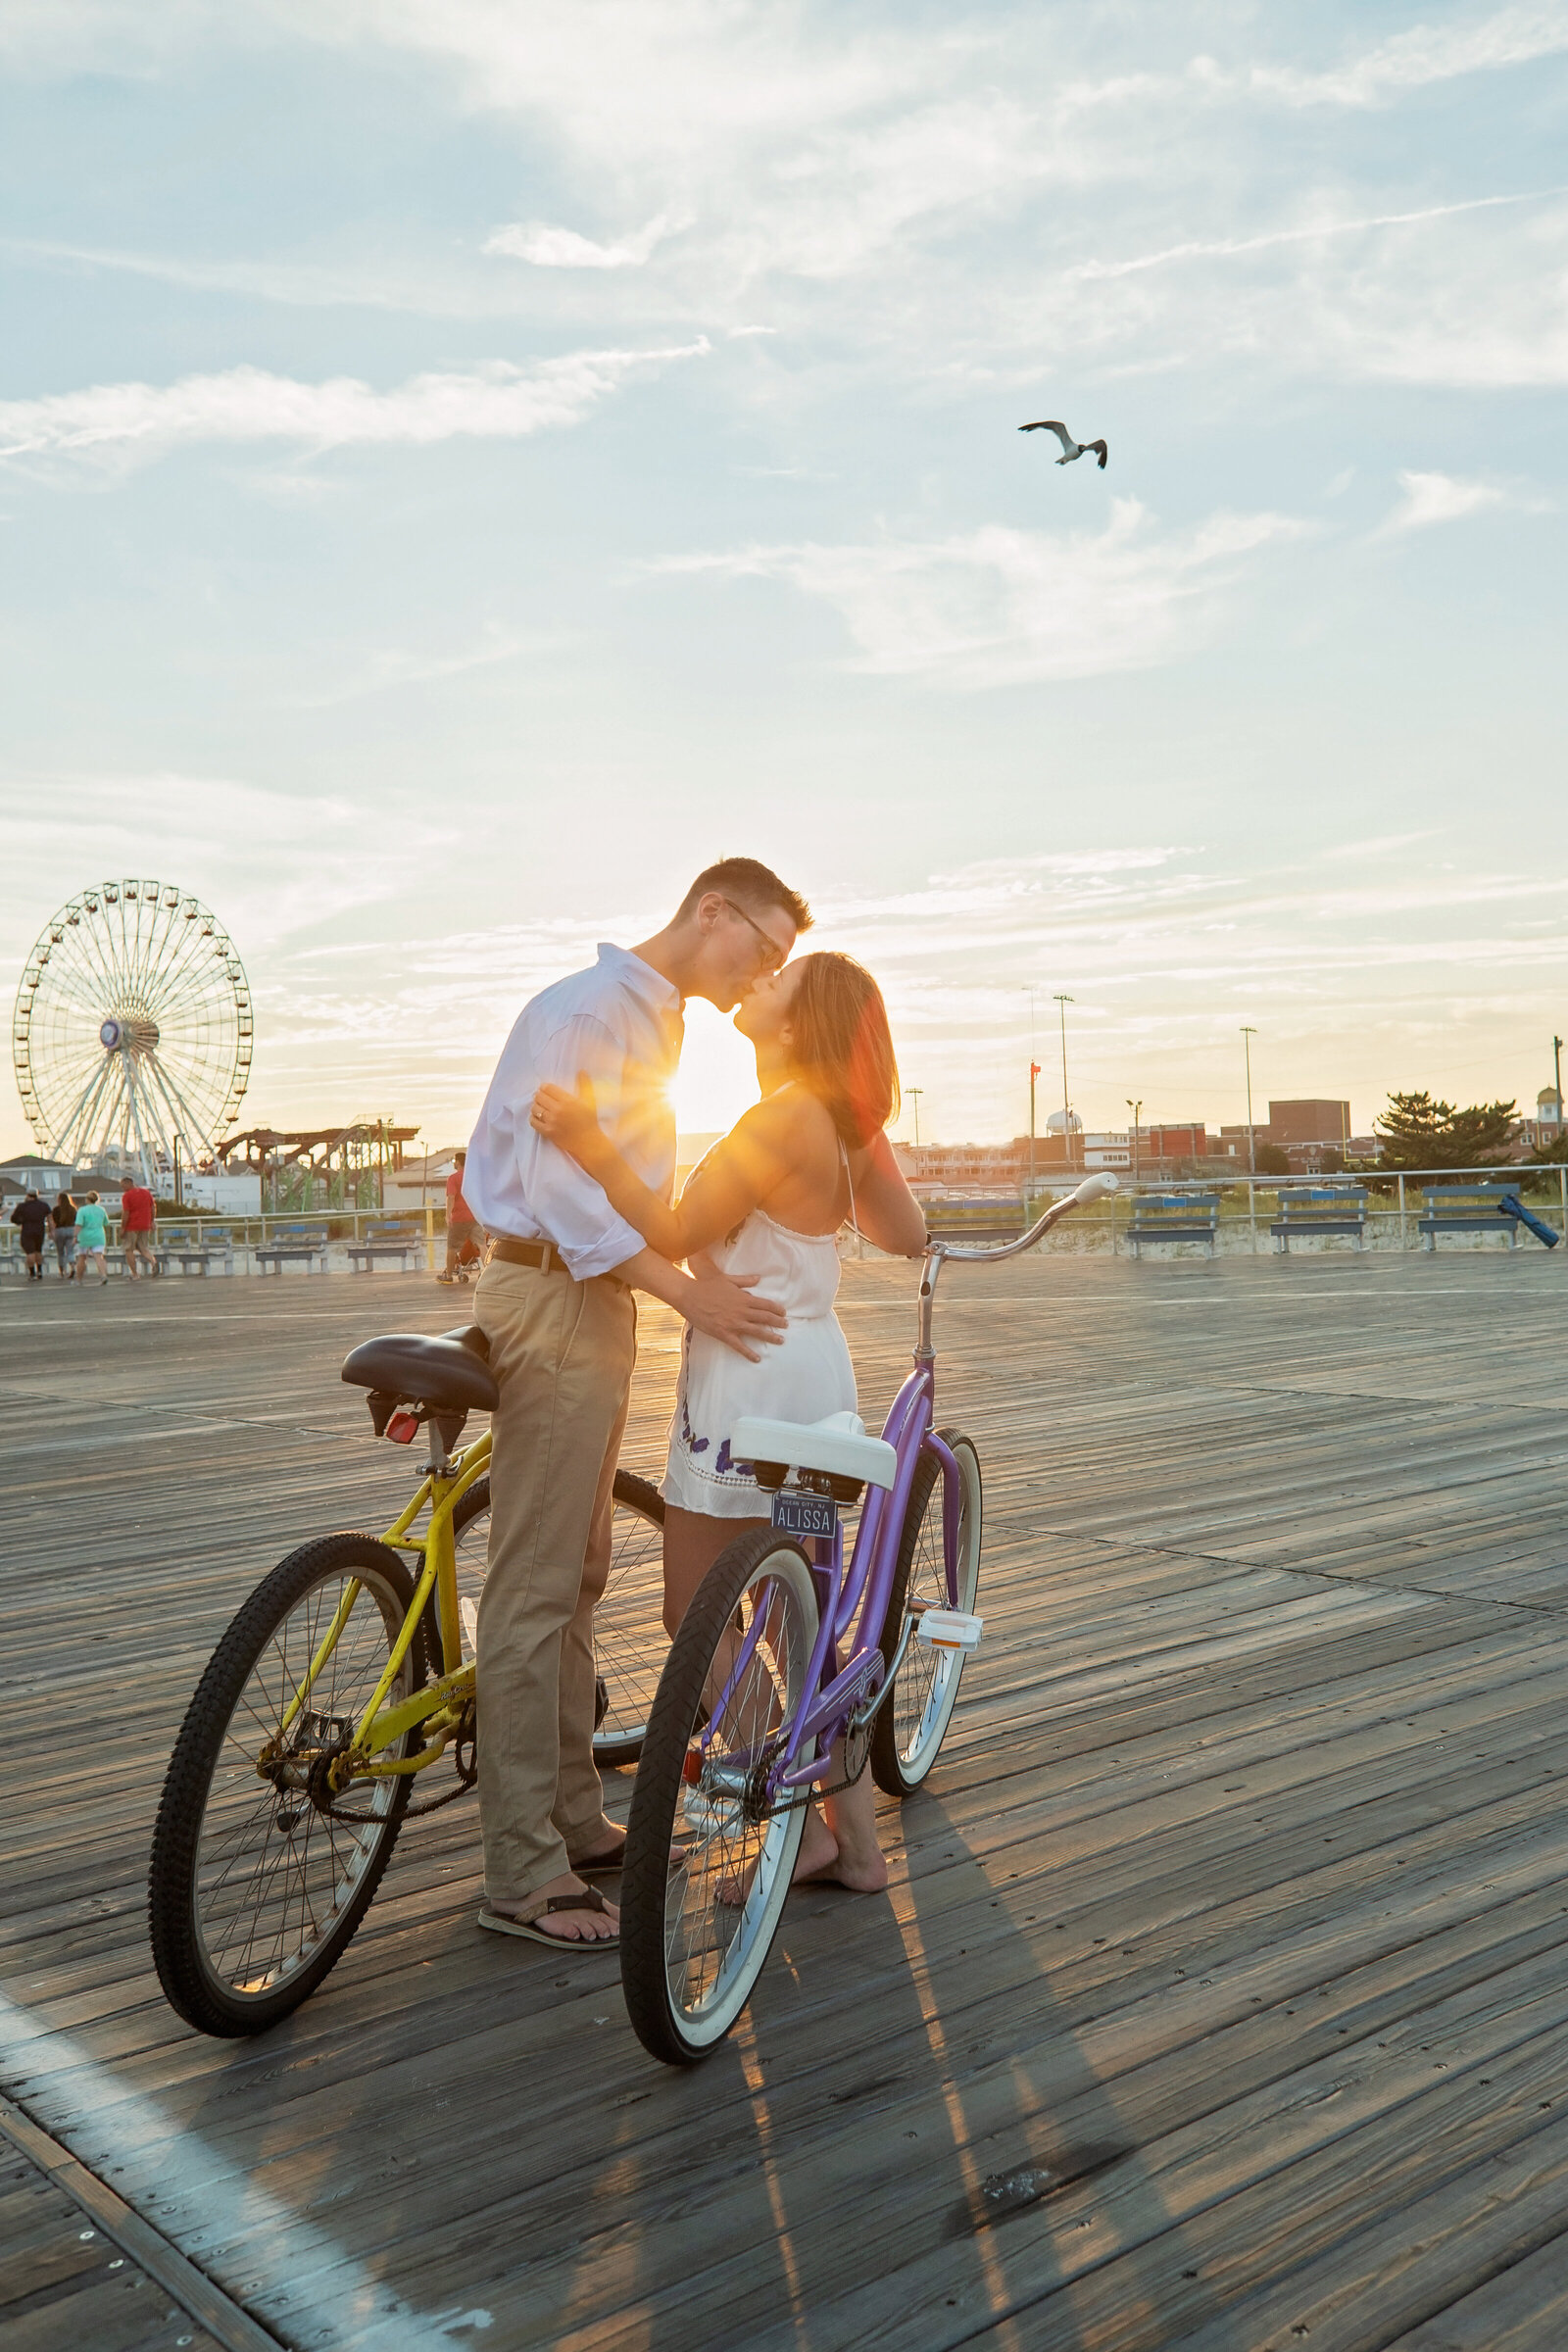 engaged couple biking on boardwalk in Ocean city nj